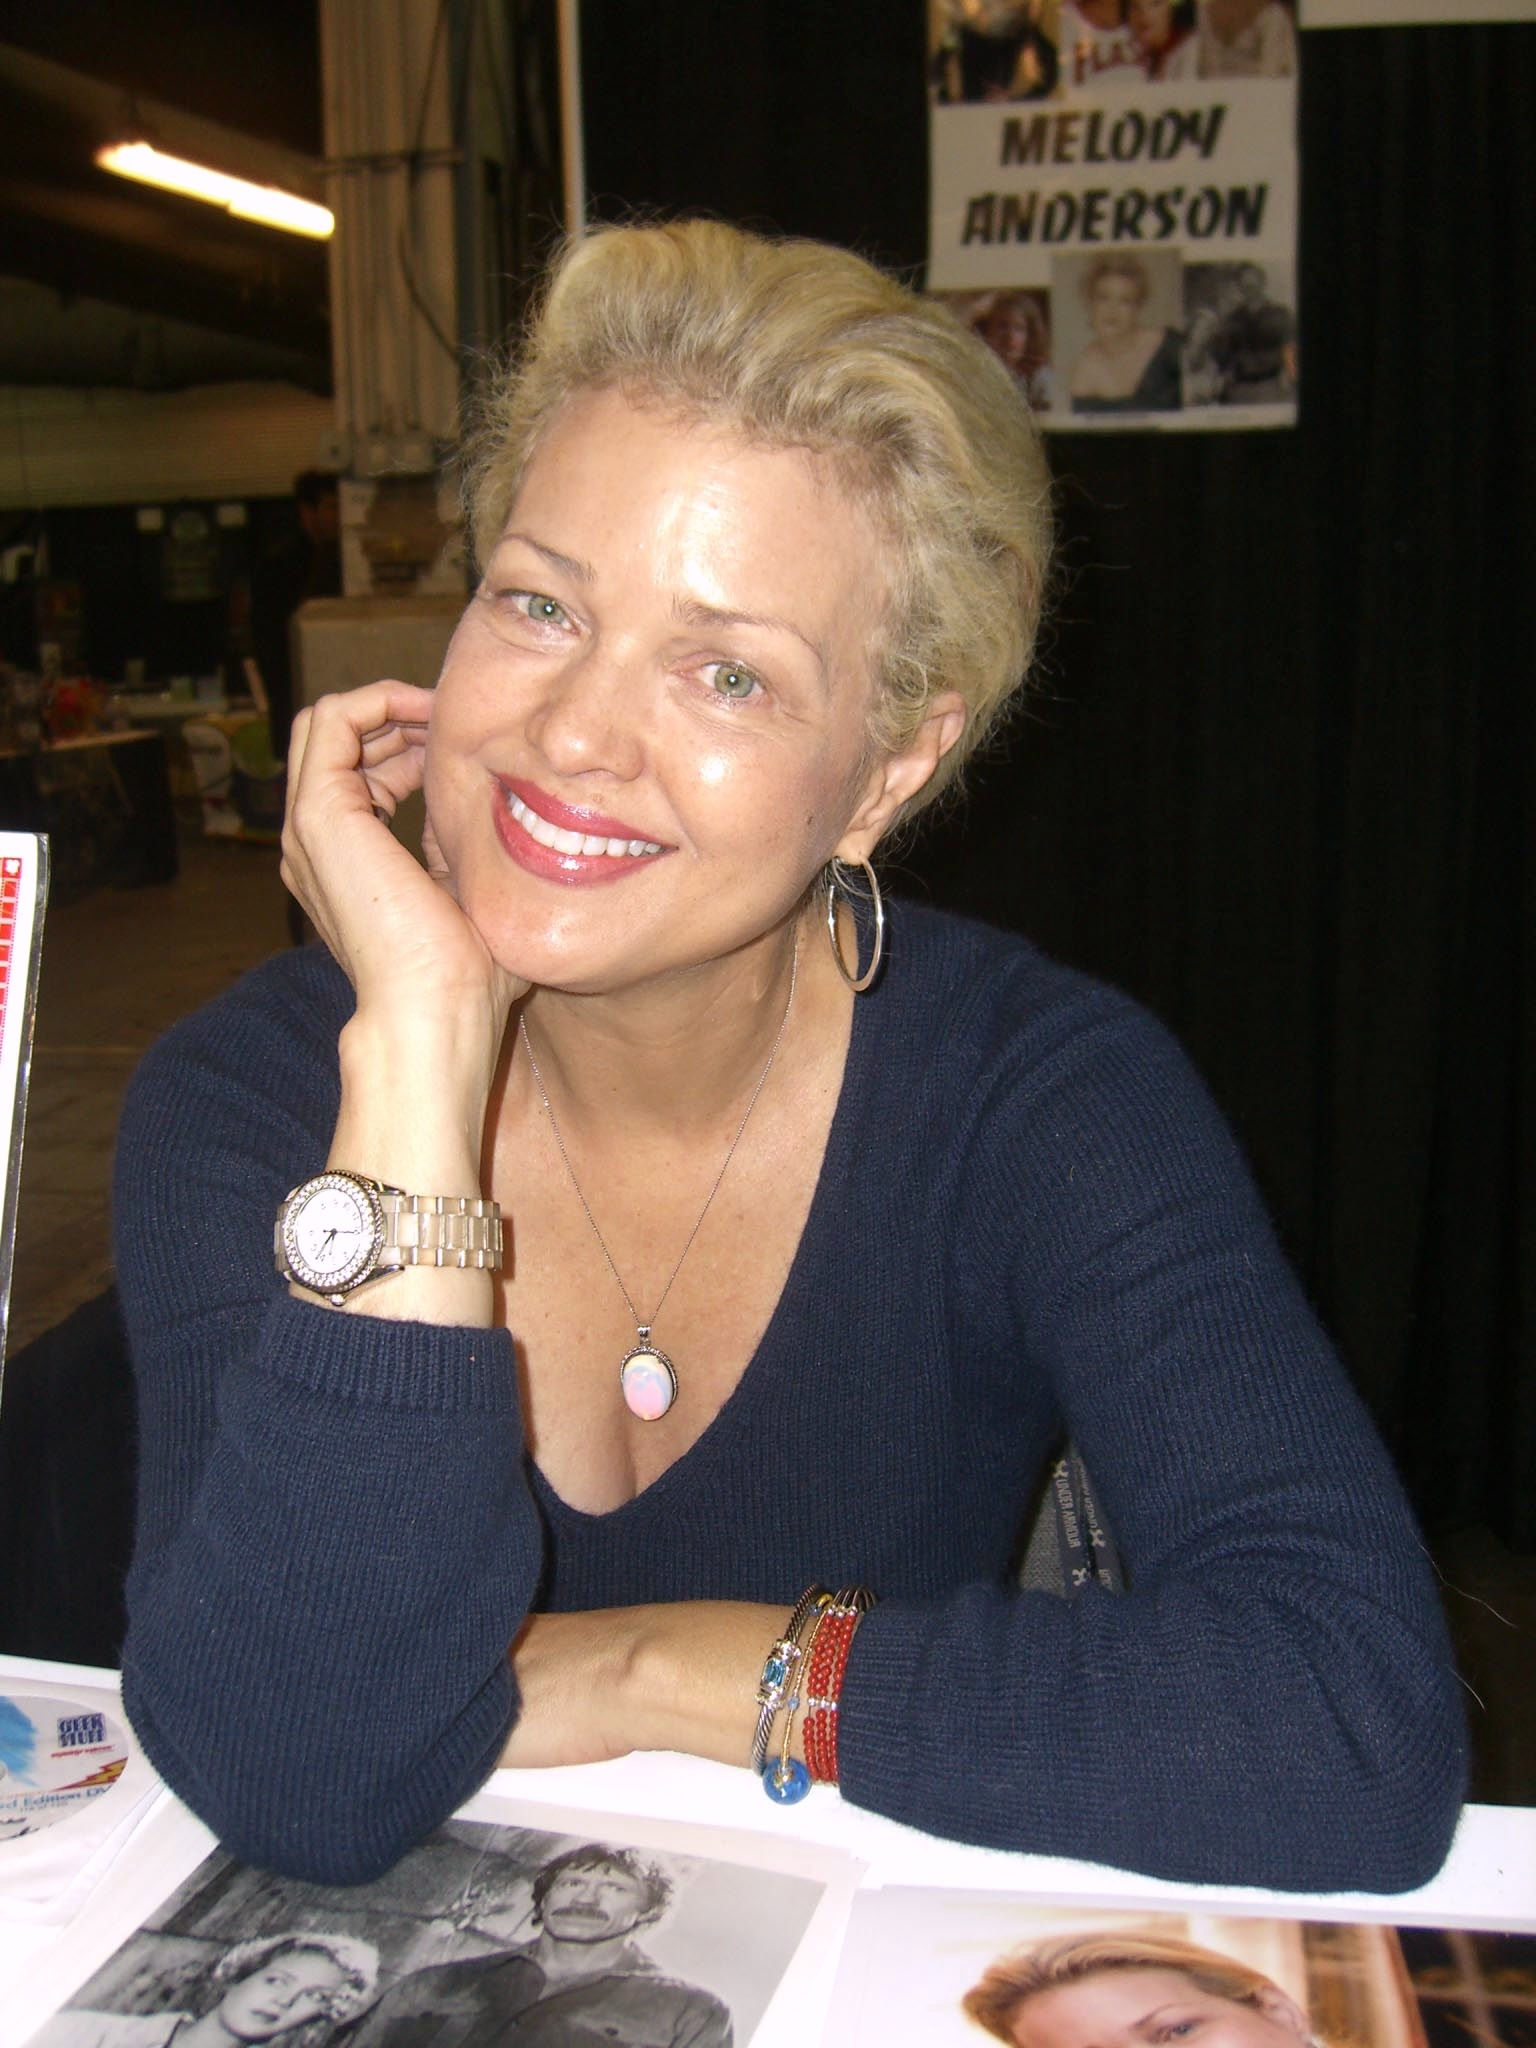 Photo of Melody Anderson: Actress from the United States, born in Canada